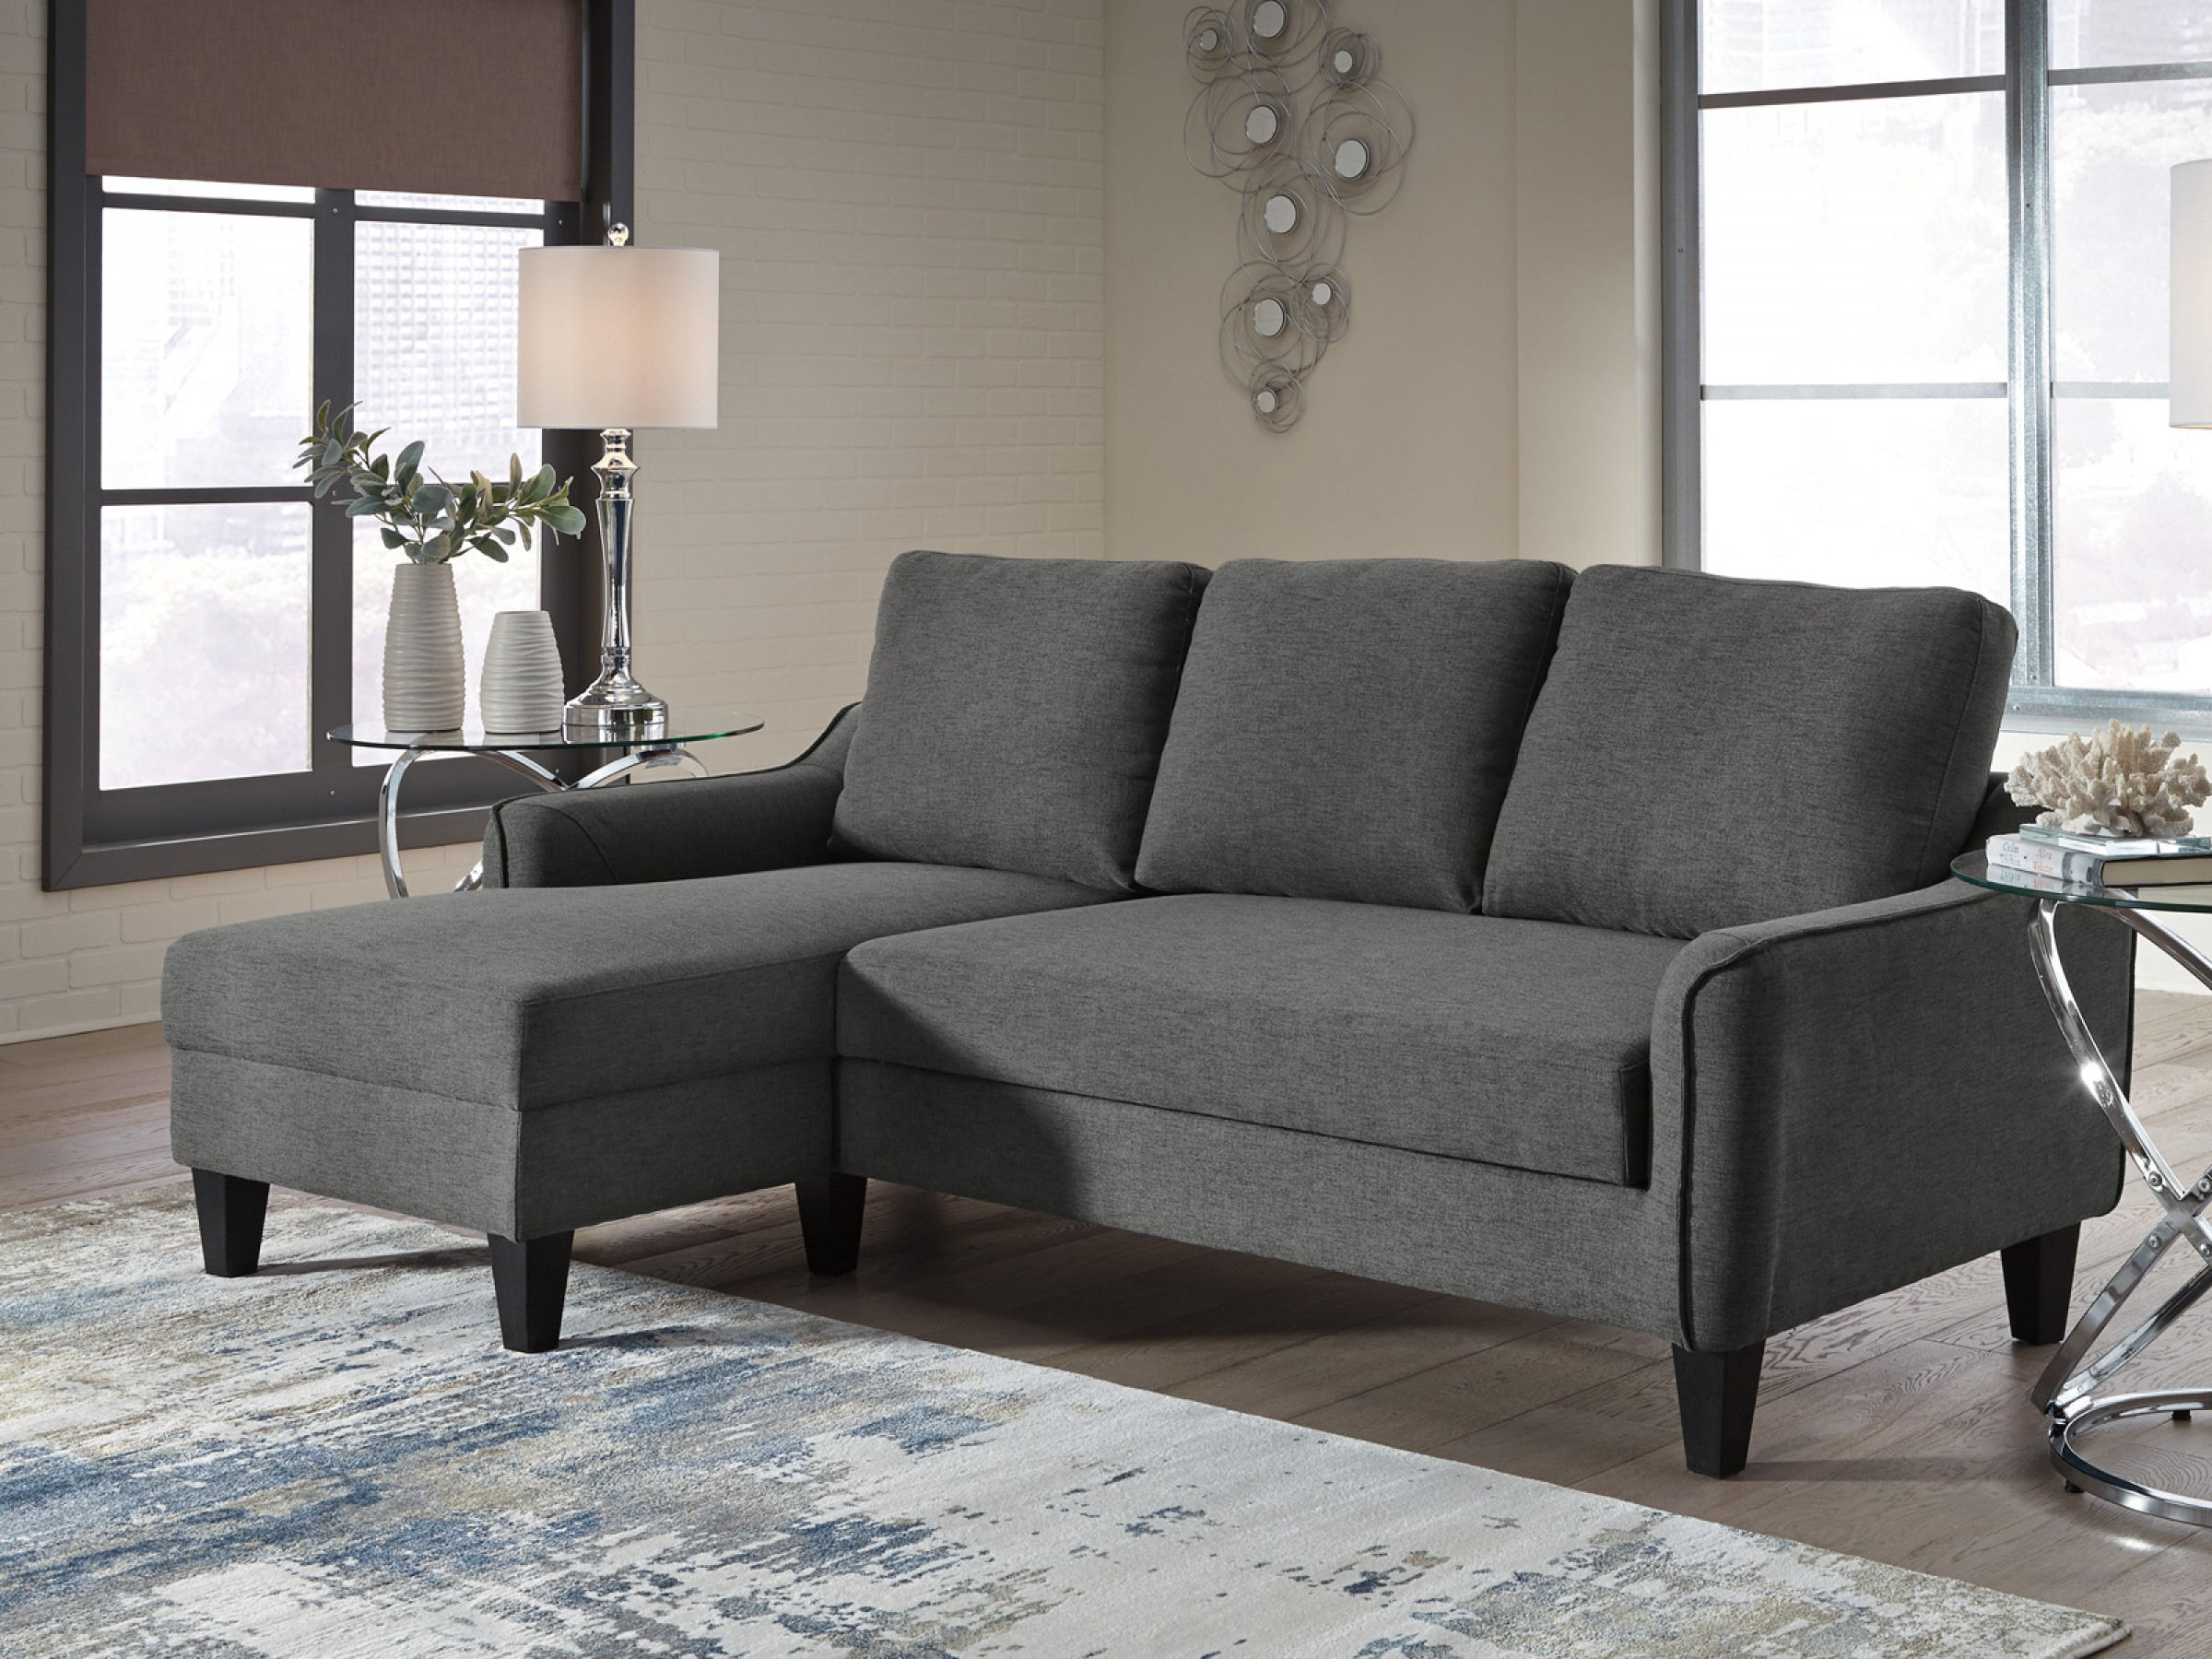 Ashley Jarreau Sofa Chaise Sleeper 77a115027177 77a115022077 77a115037177 77a115032077